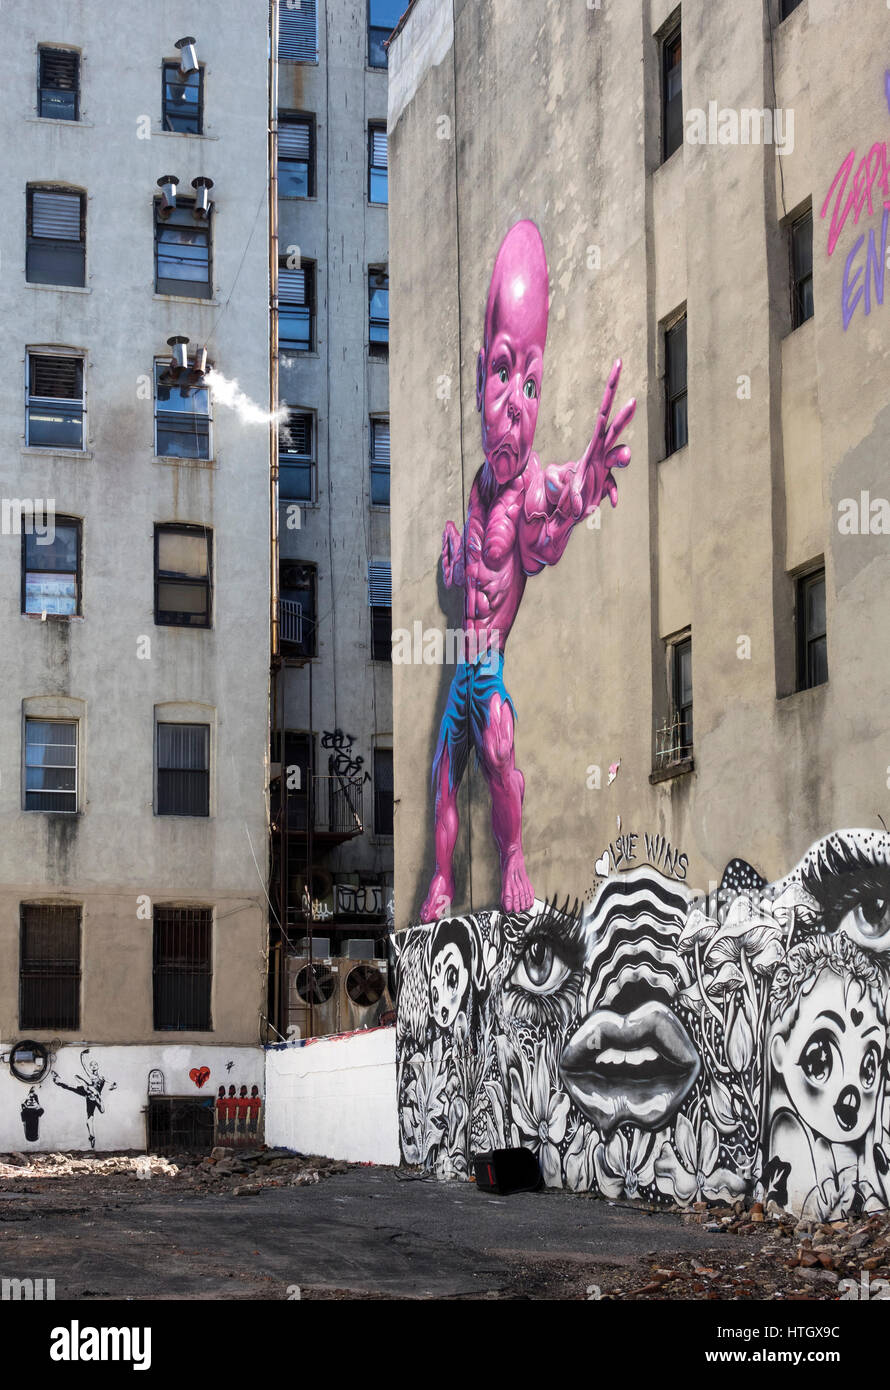 A Ron English Temper Tots mural in Little Italy in New York City - Stock Image